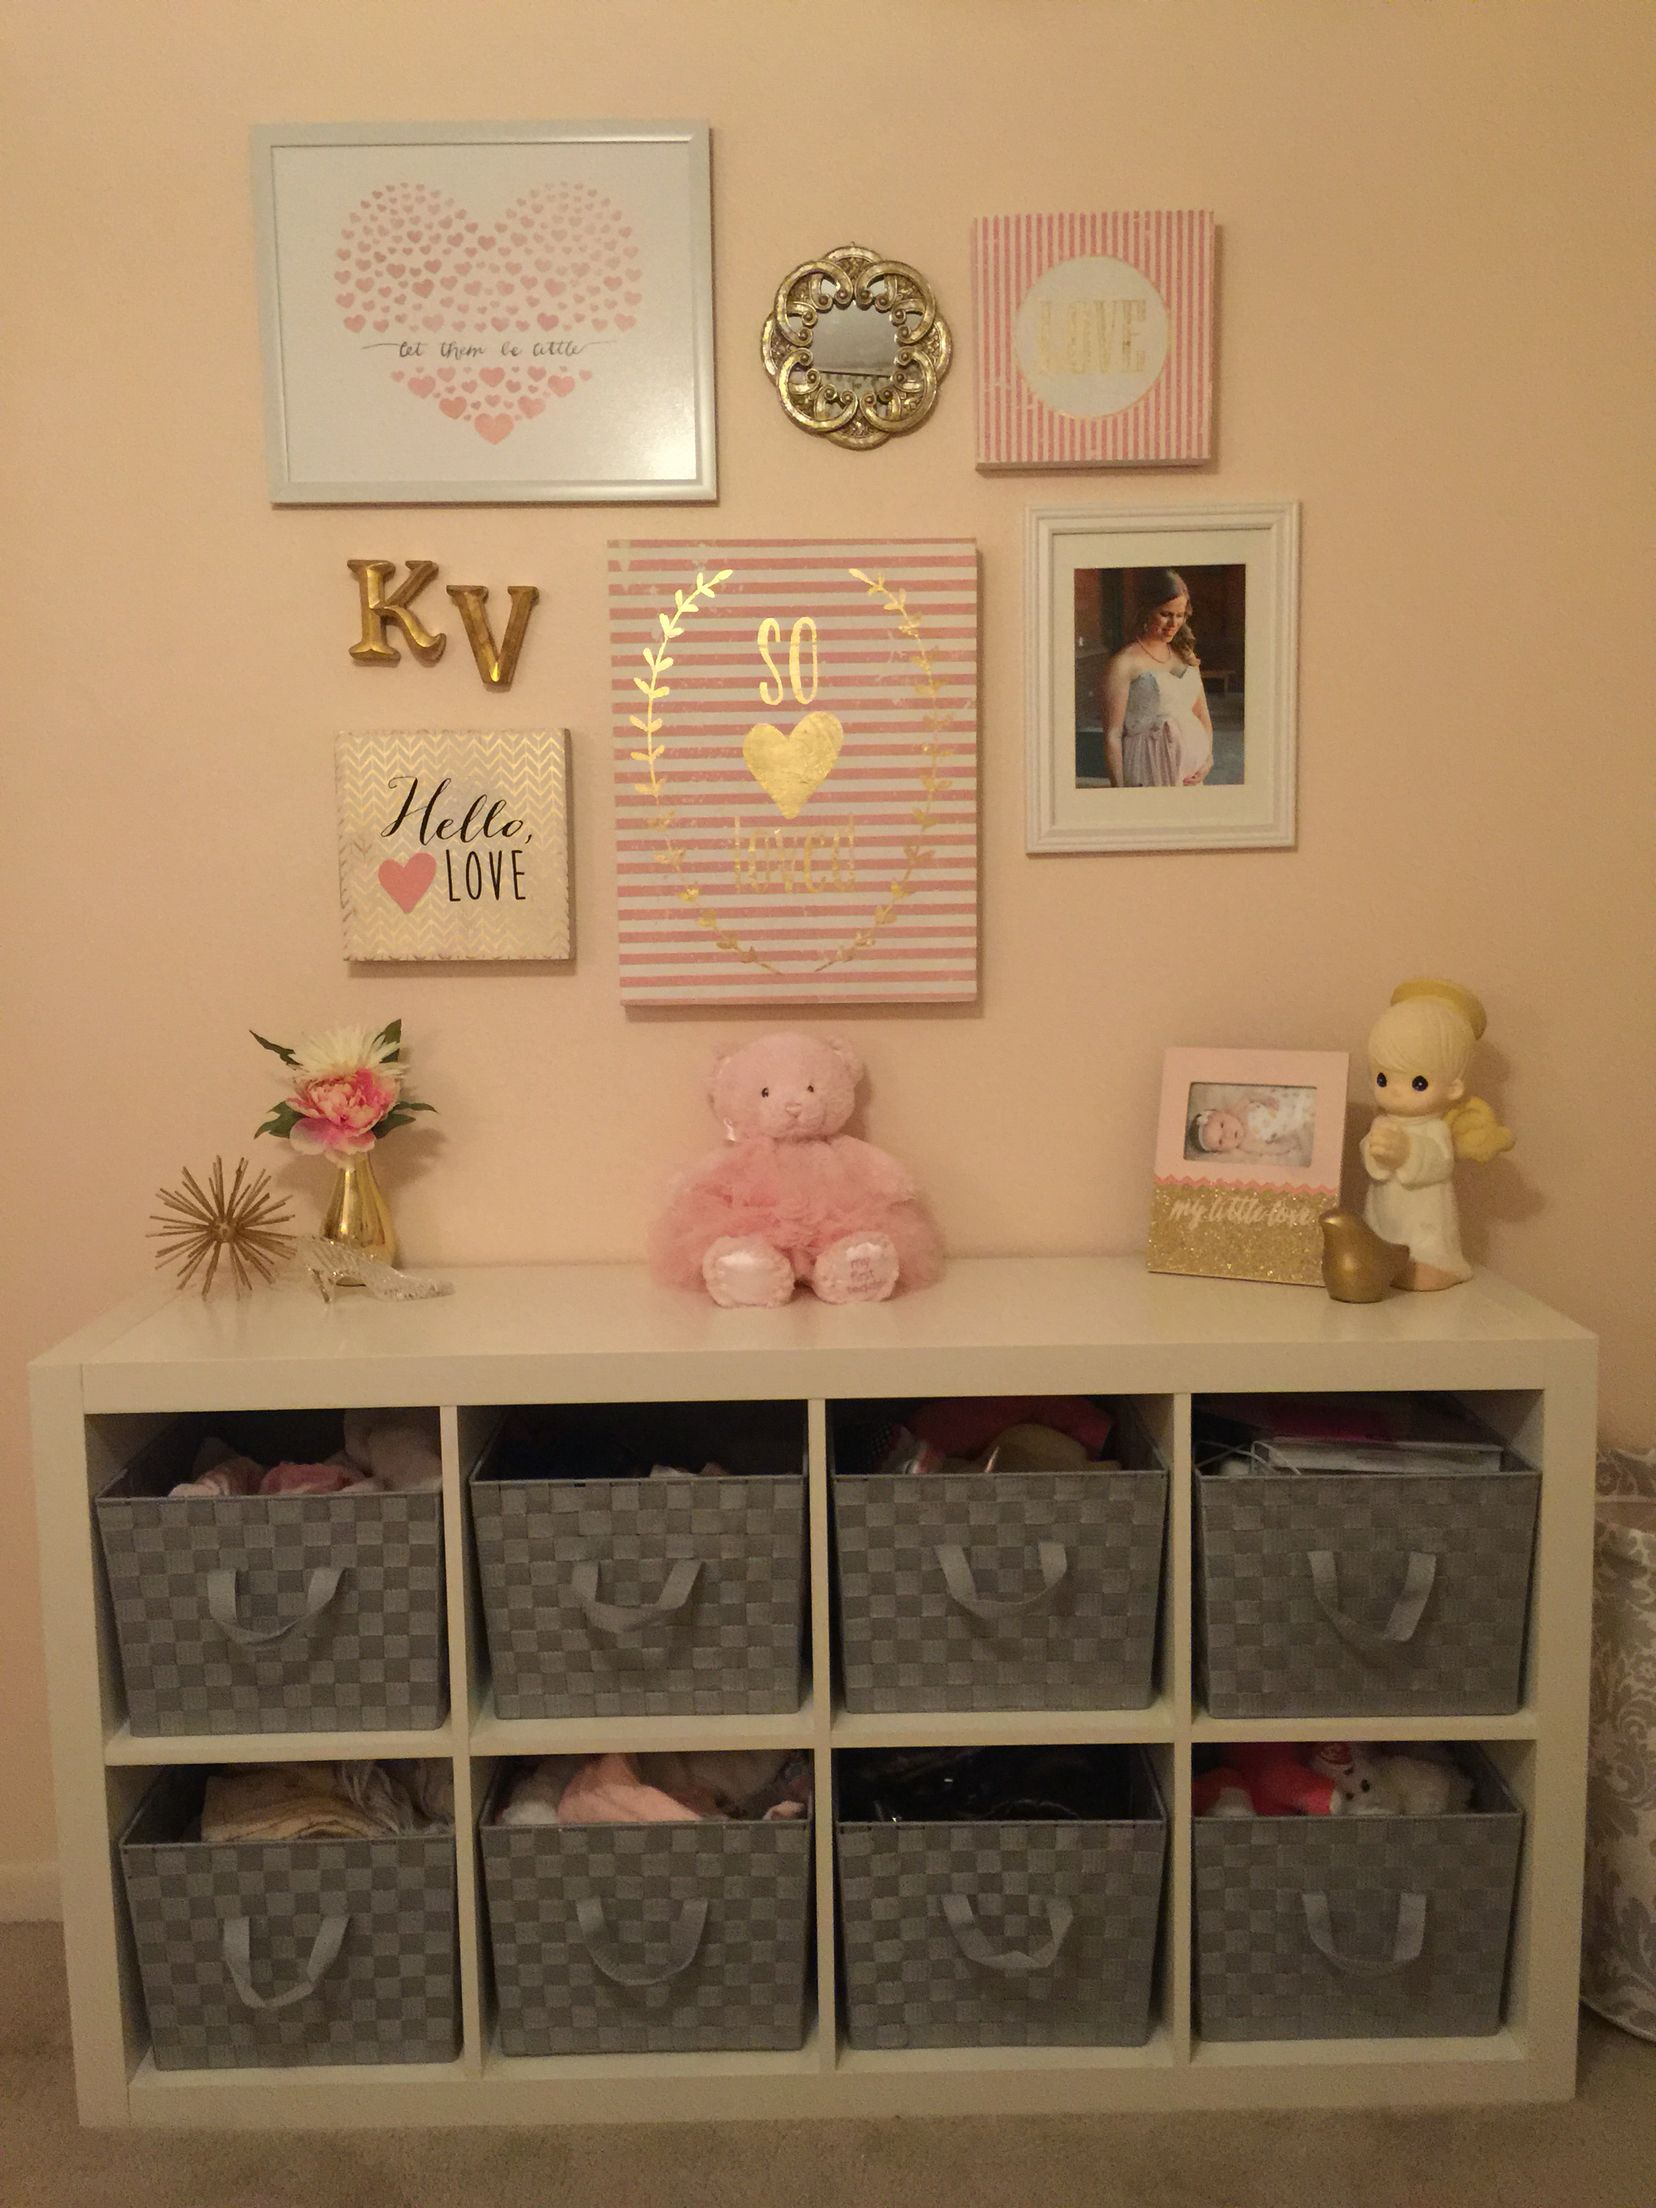 Bookshelf from Ikea Baskets from Homegoods Most decor from Hobby